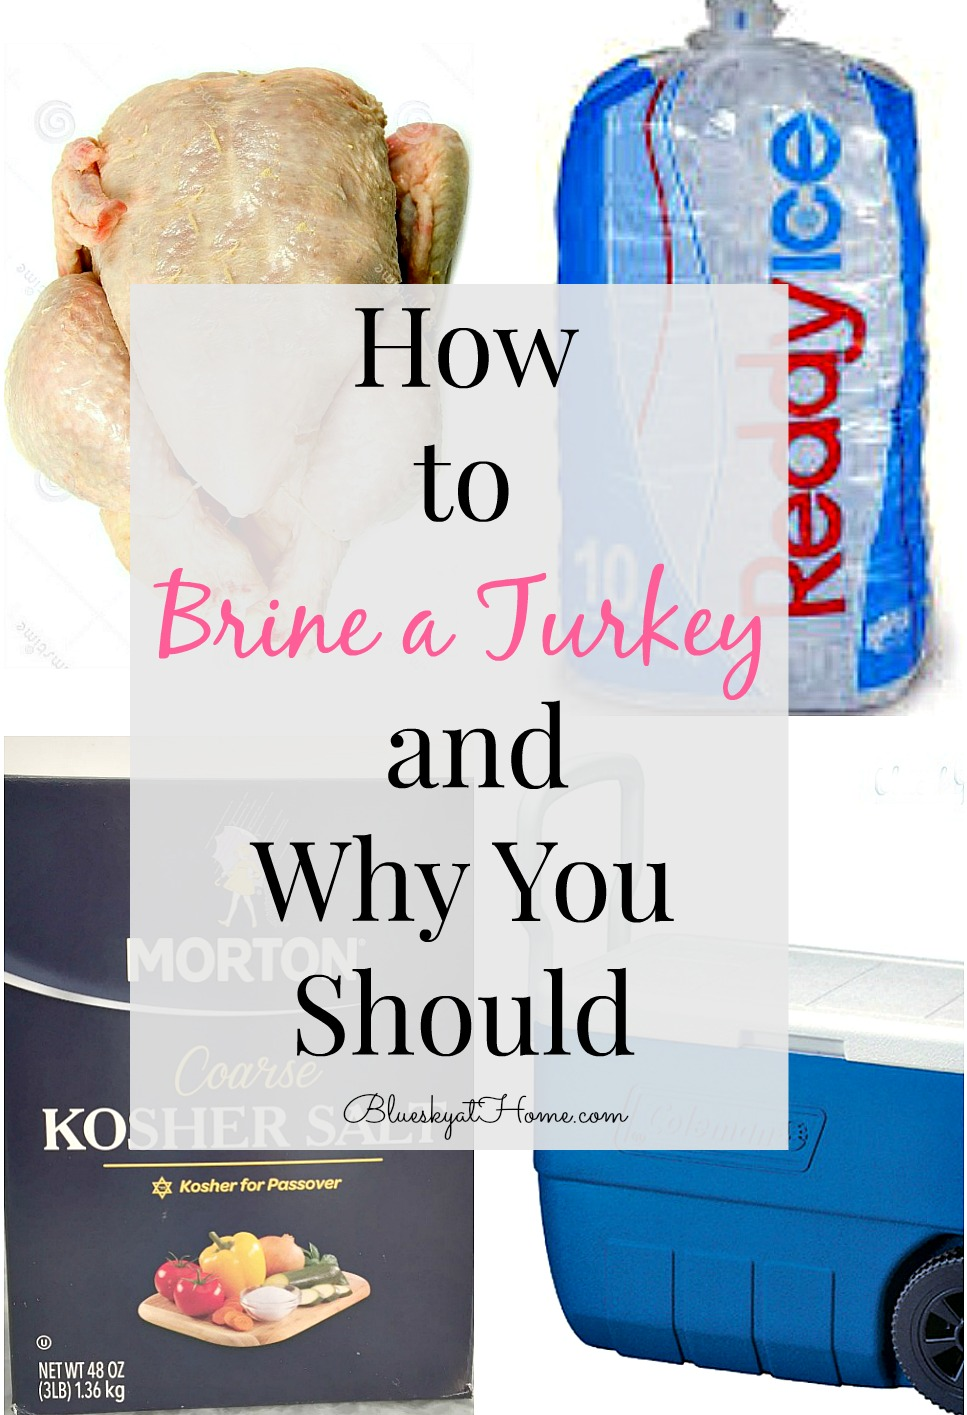 how to brine a turkey and why you should bluesky at home how to brine a turkey and why you